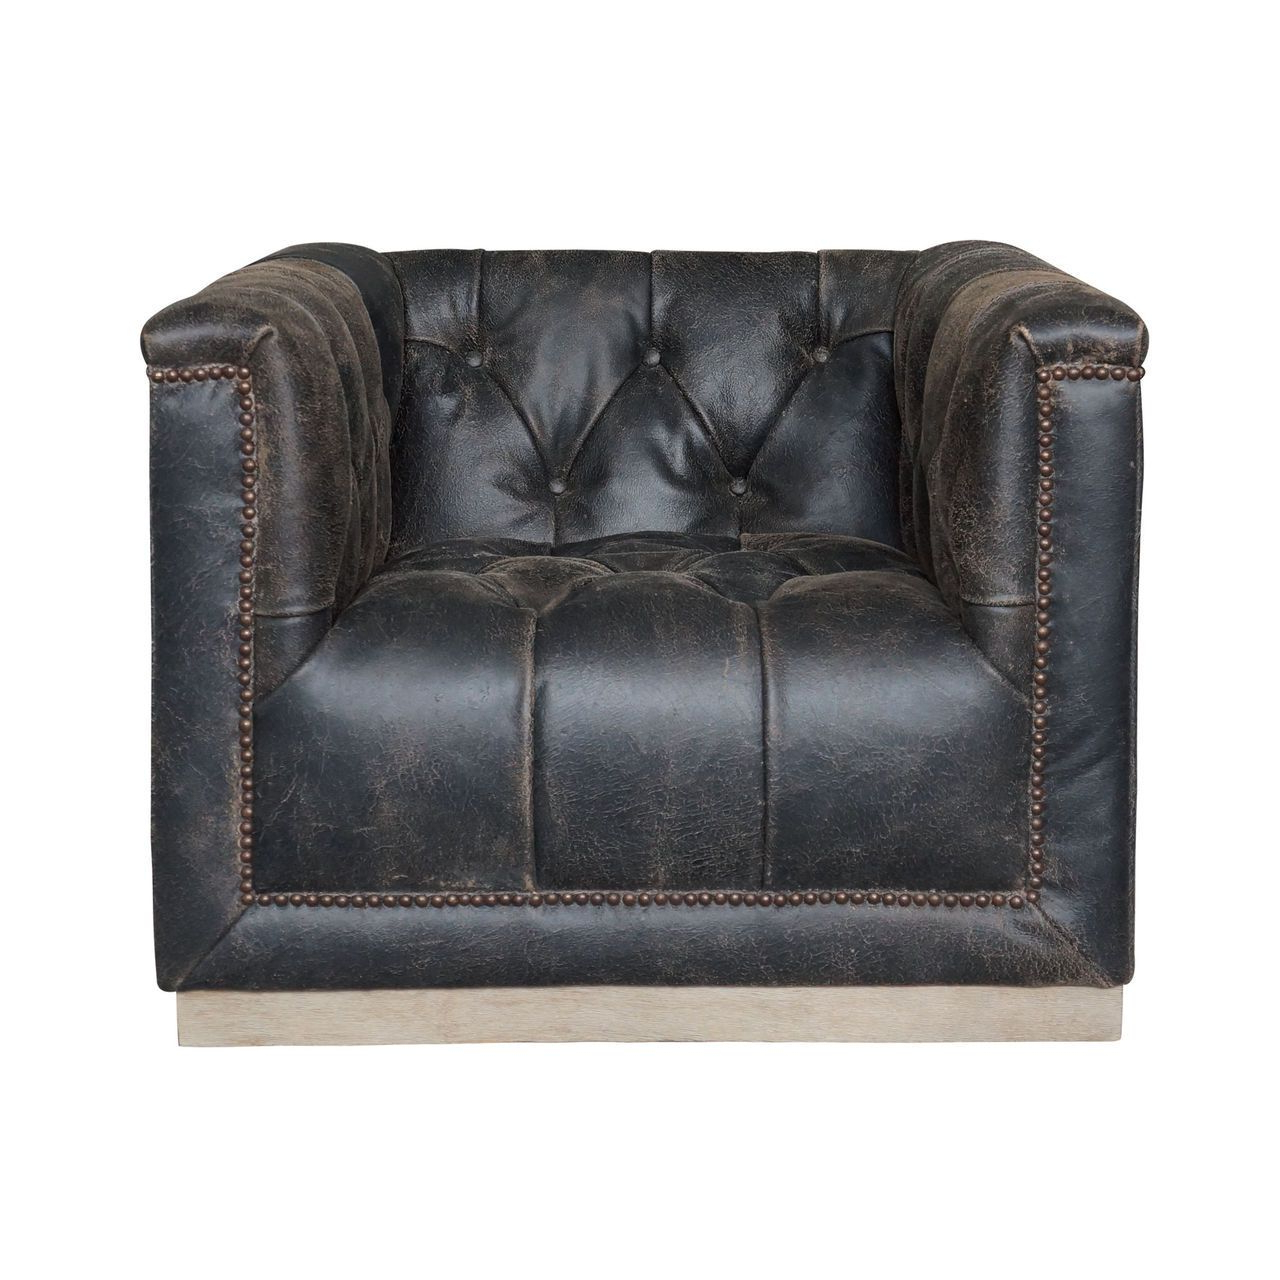 Maxx Distressed Black Leather Swivel Club Chair (View 11 of 20)